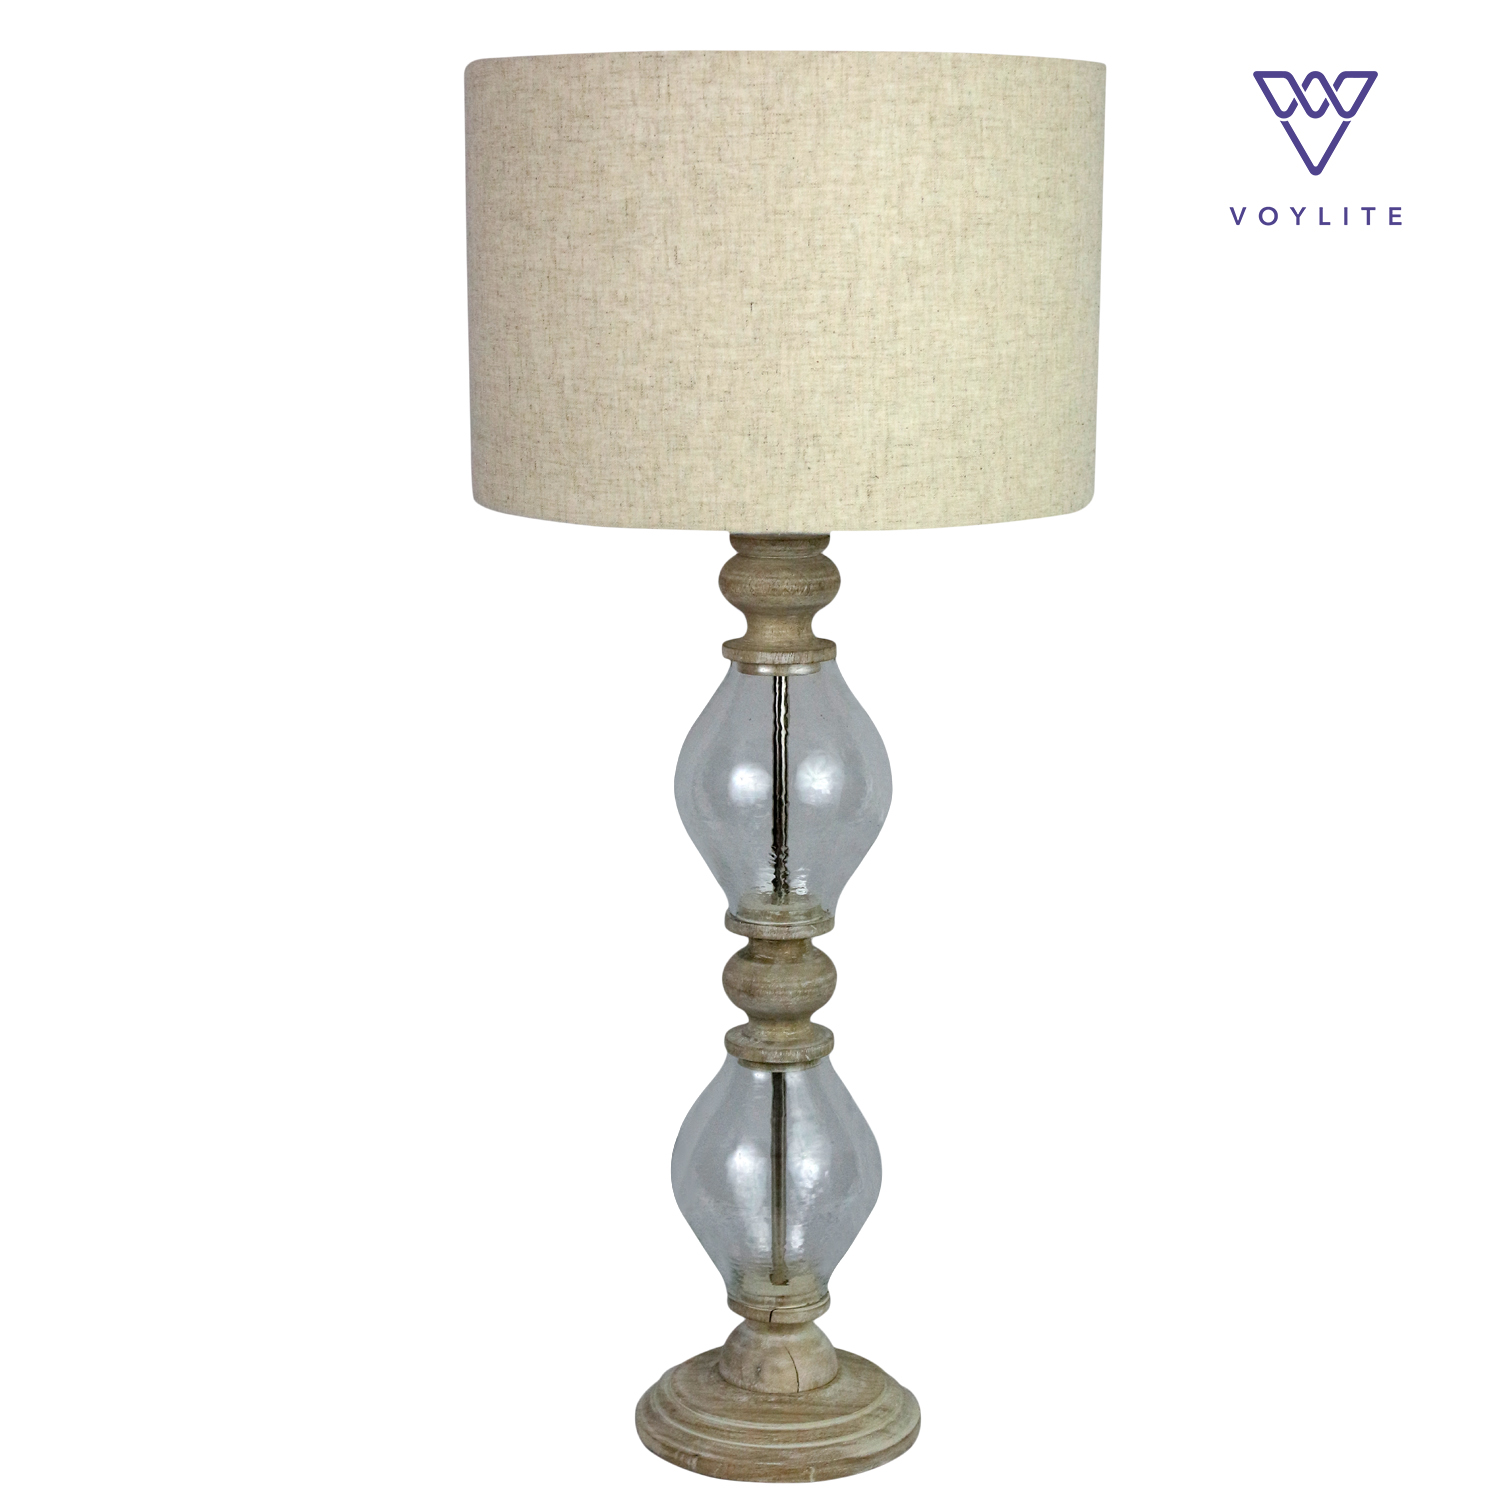 Zliccio Table Lamp